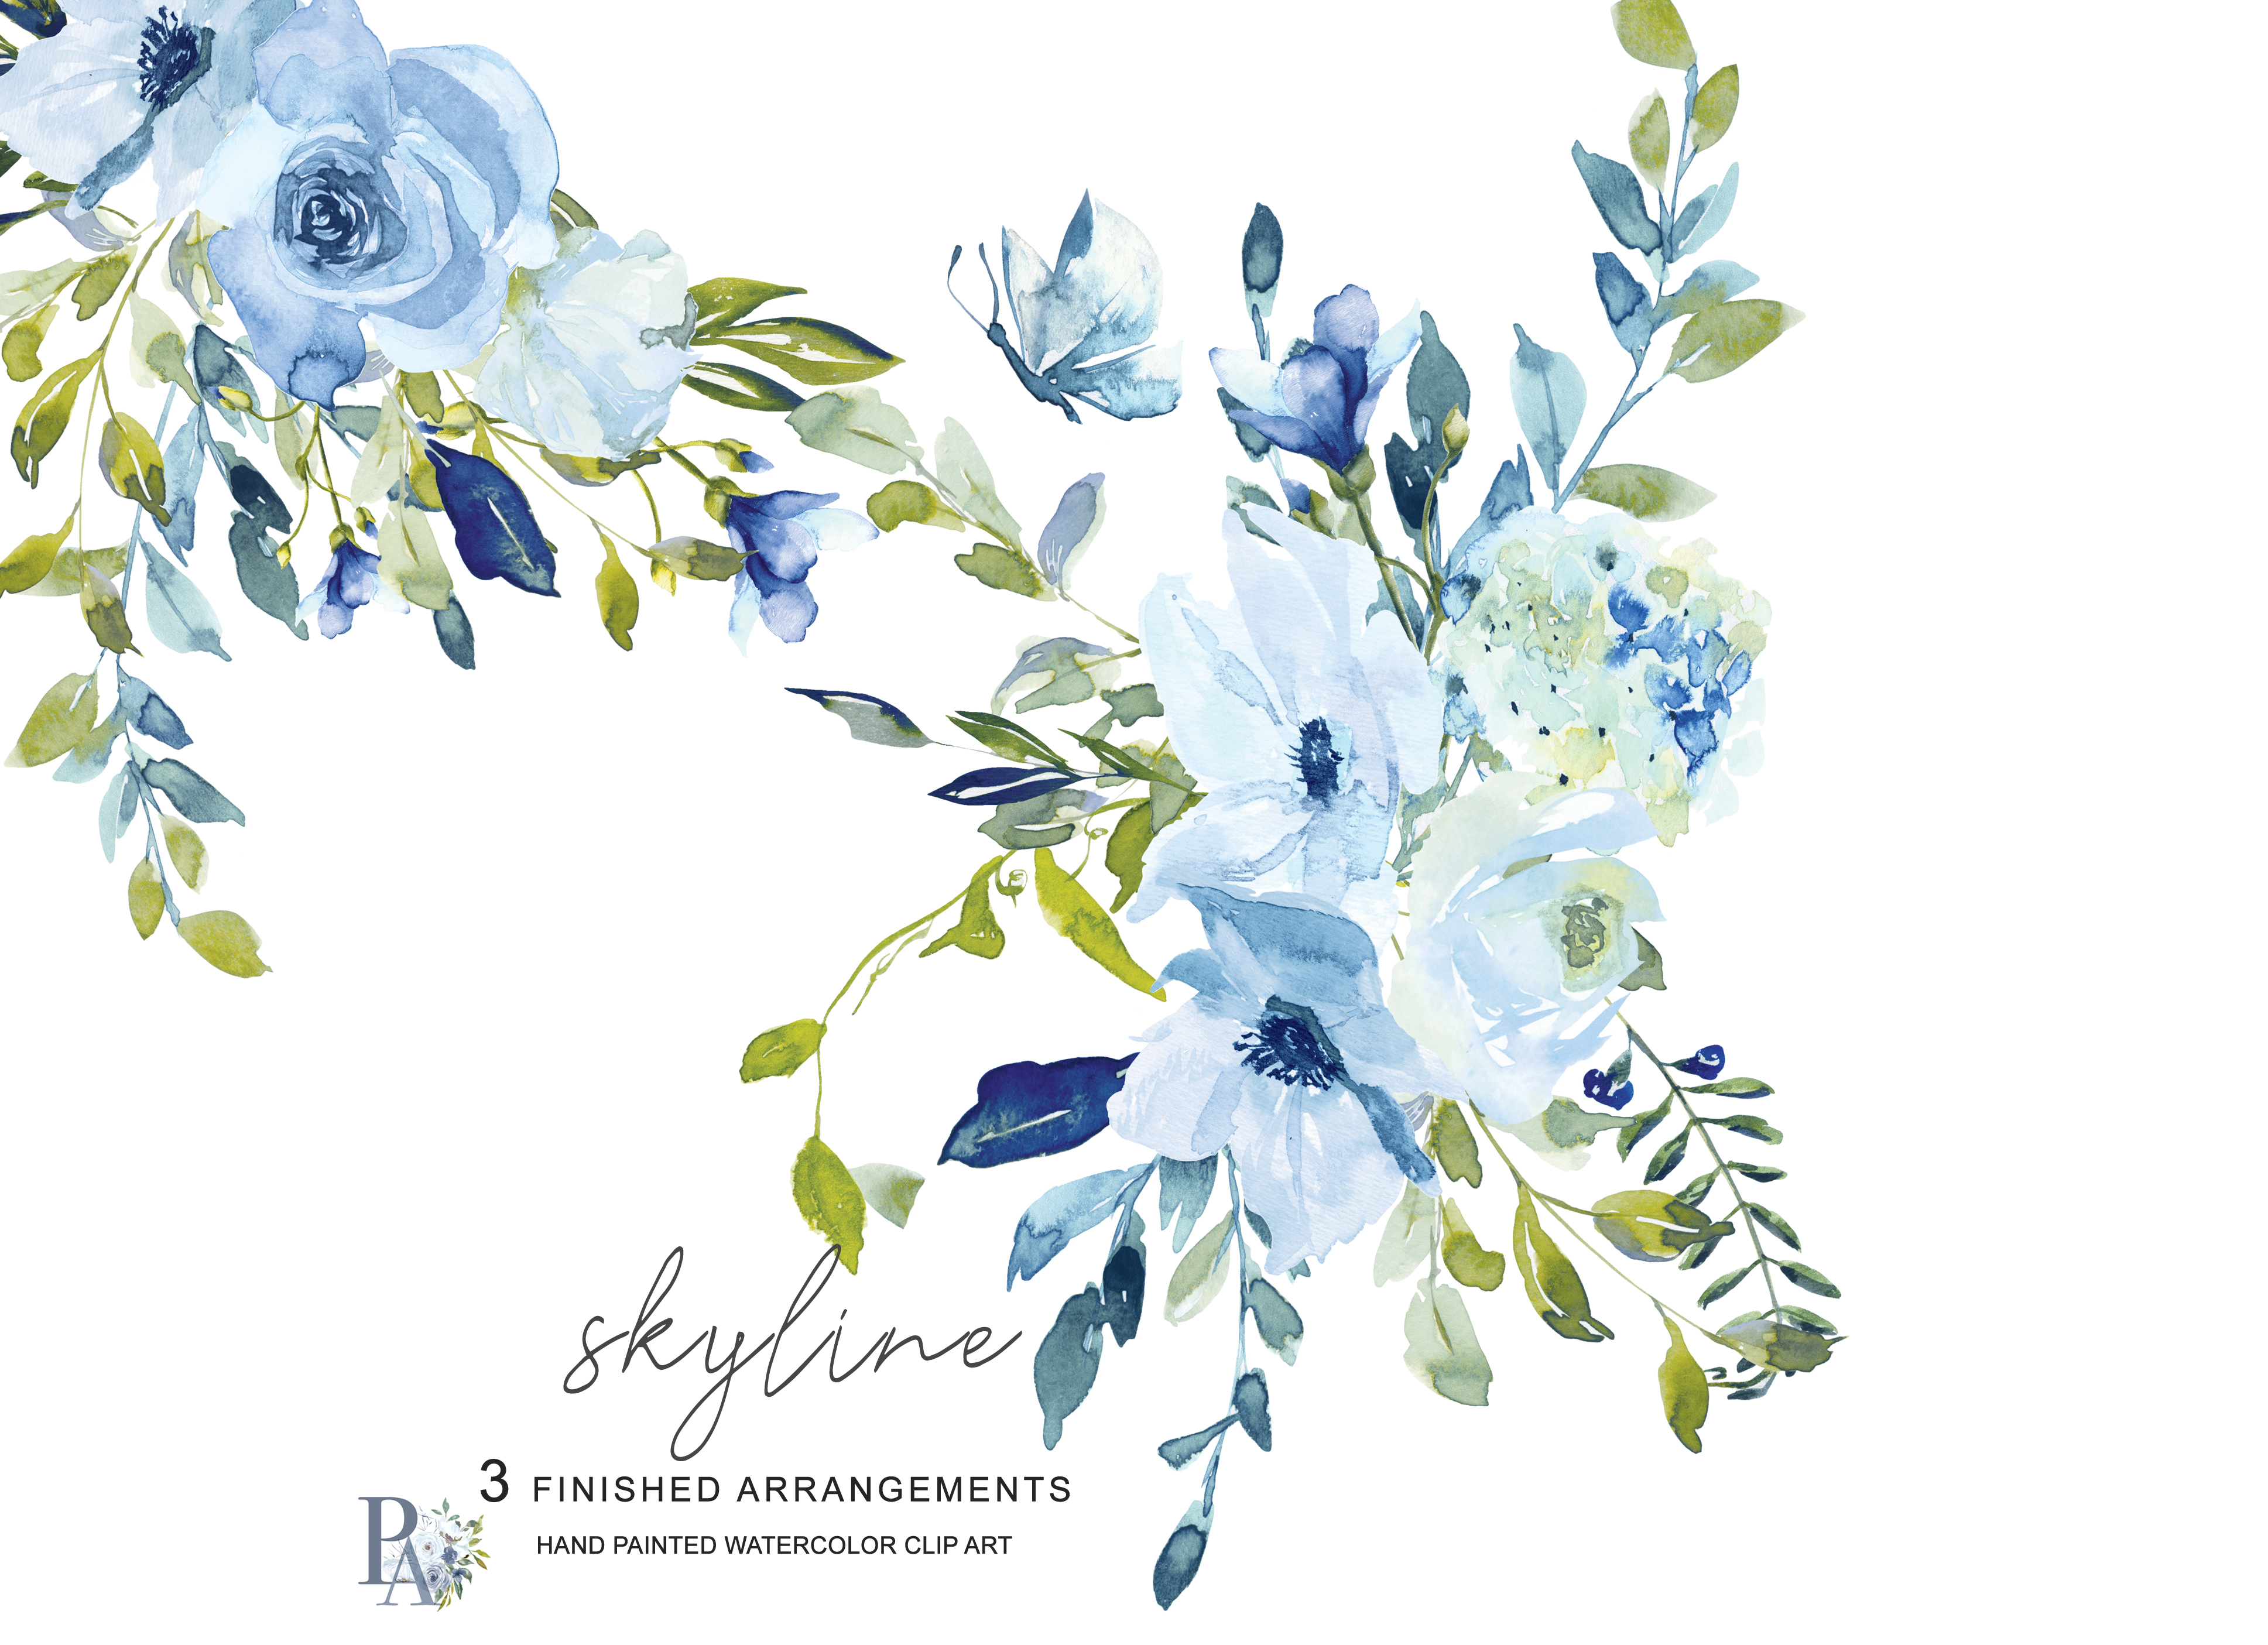 Hand Painted Watercolor Light Blue and Green Florals Clipart